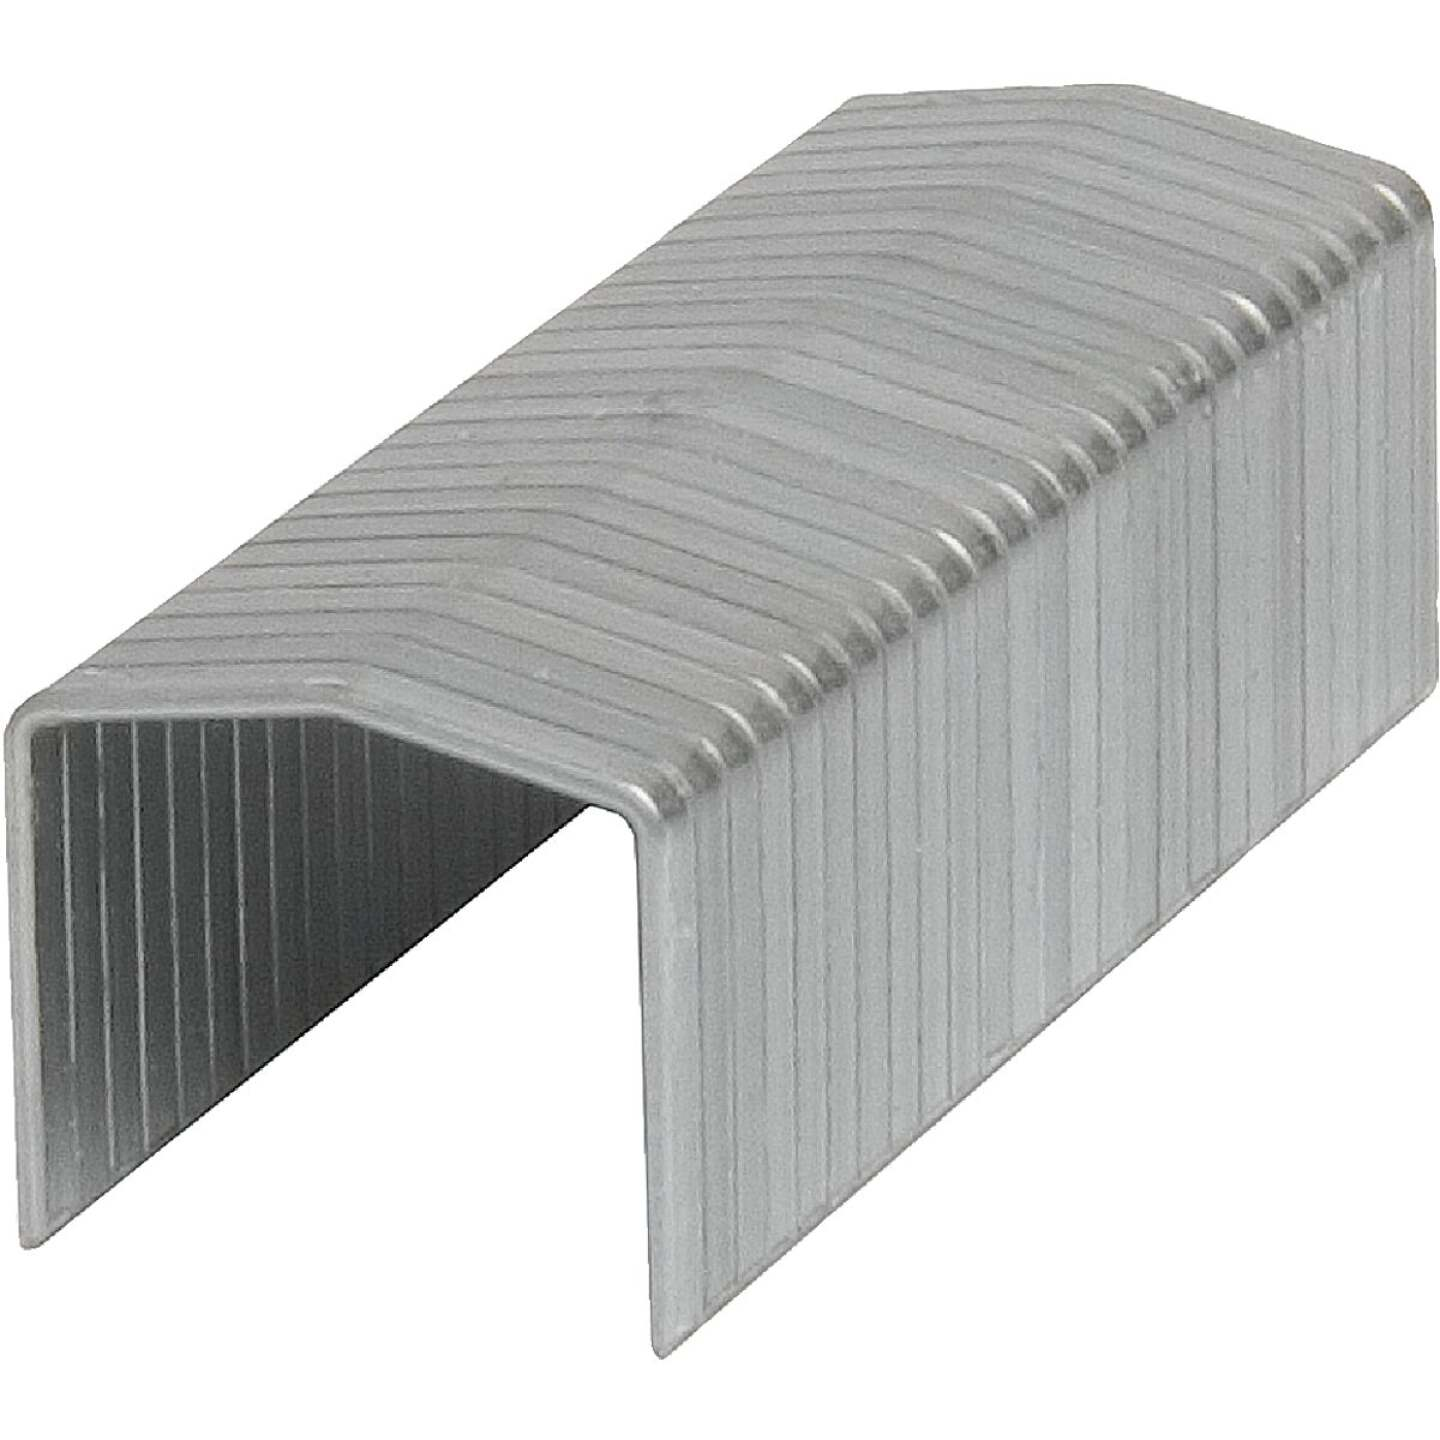 Channellock No. 11 Power Crown Hammer Tacker Staple, 3/8 In. (5000-Pack) Image 1